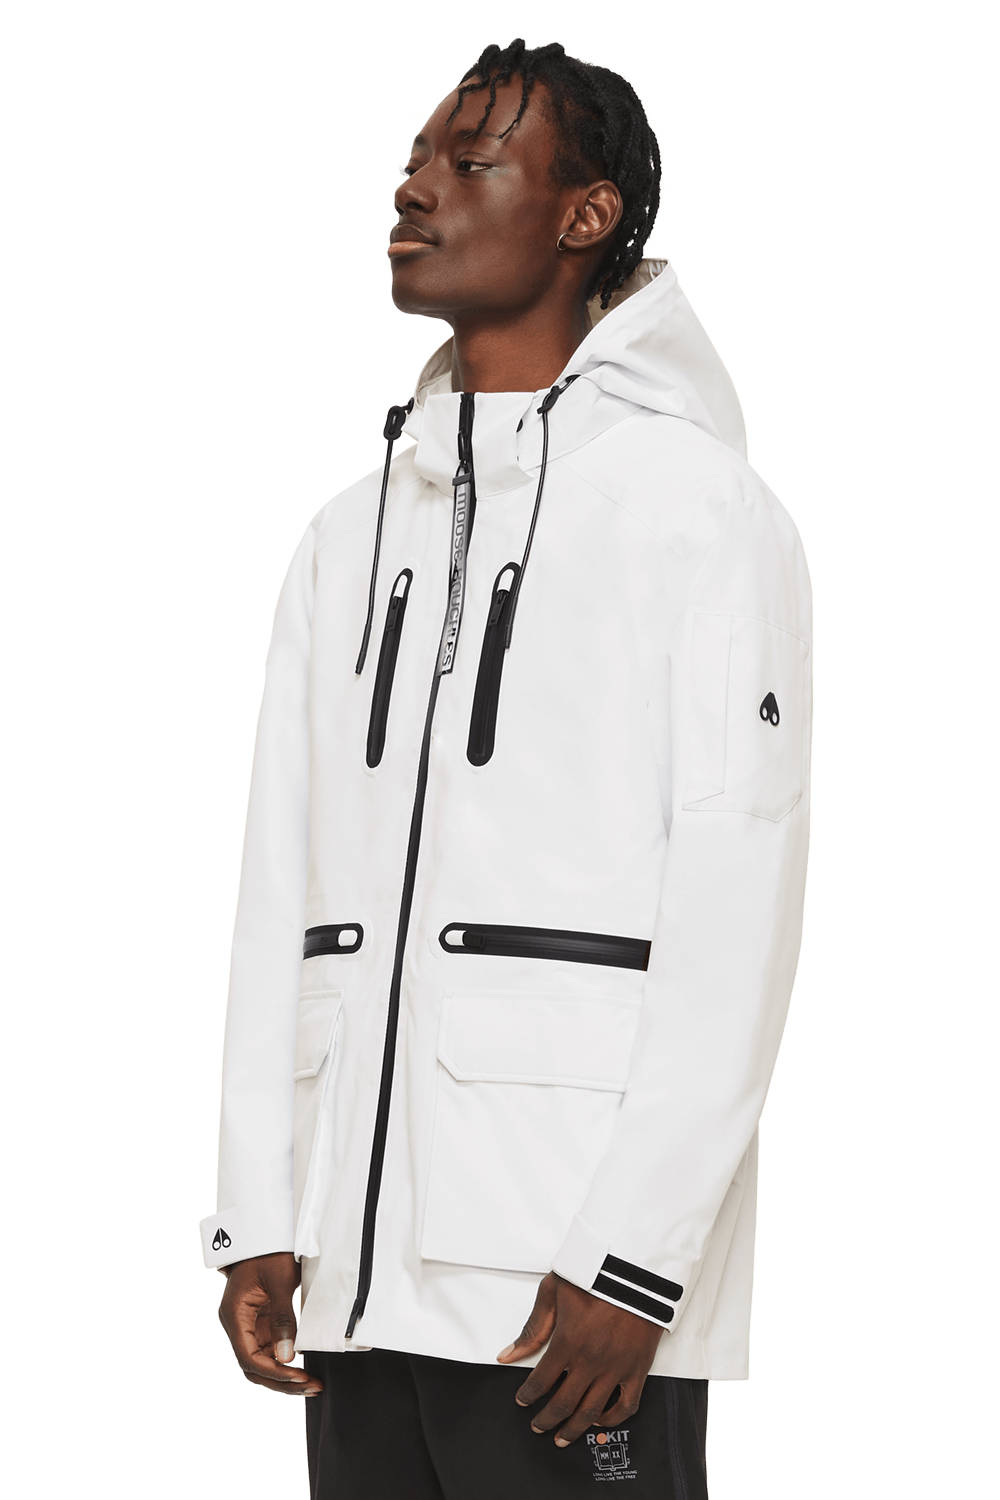 Knuckle Puck Jacket M11MJ102 White Front